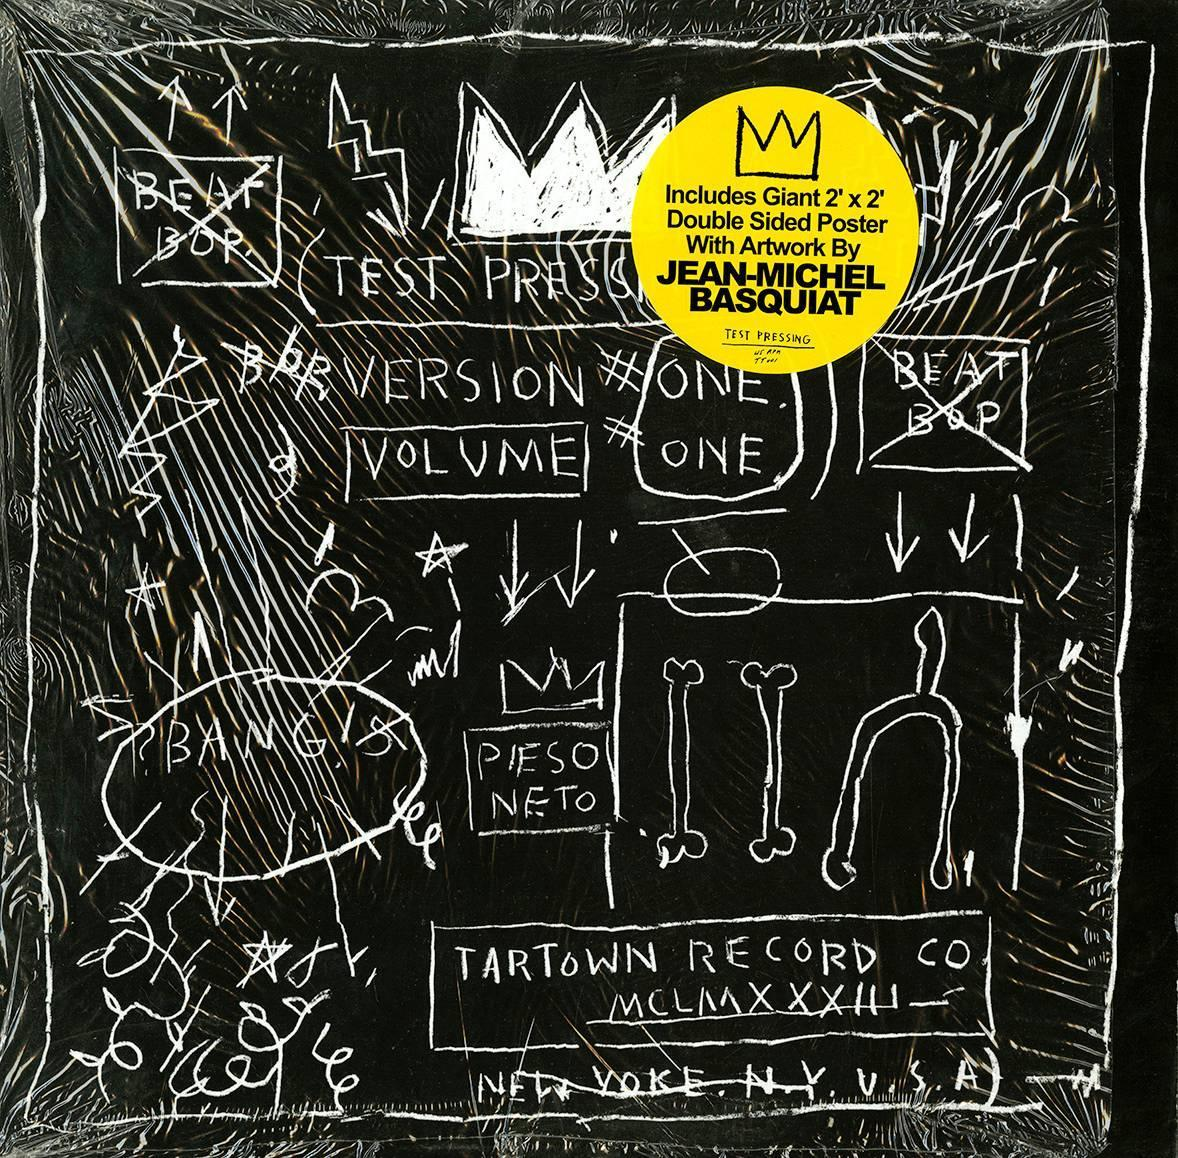 Jean Michel Basquiat Basquiat Beat Bop For Sale At 1stdibs